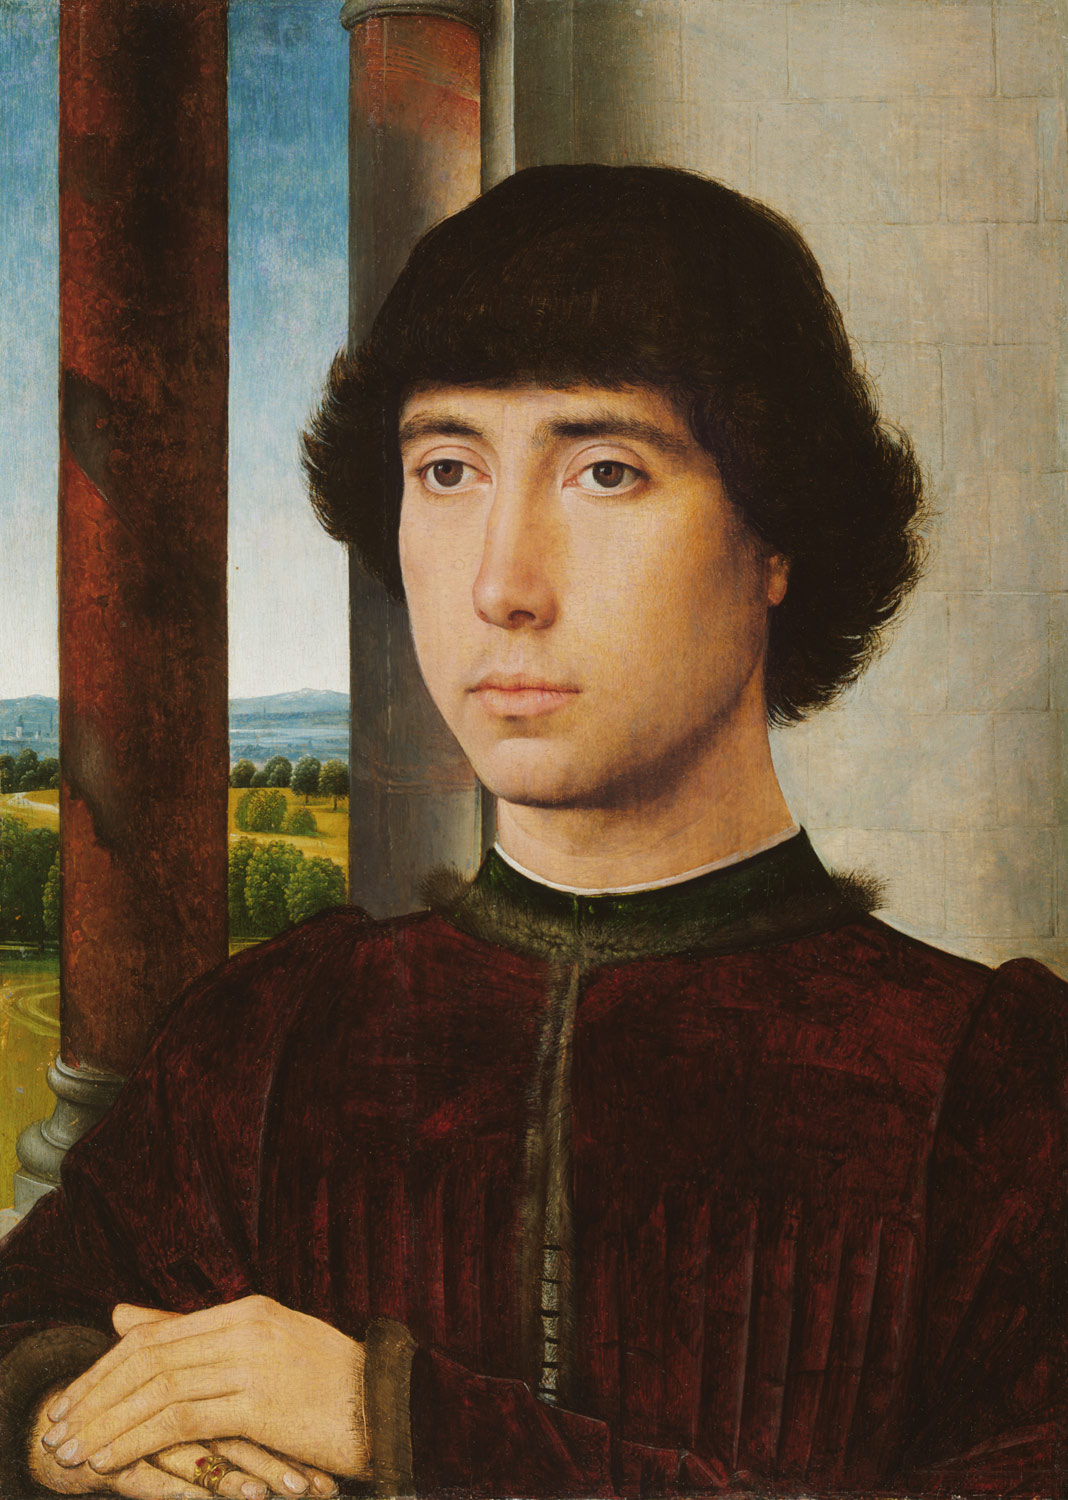 intentional alterations of early netherlandish painting